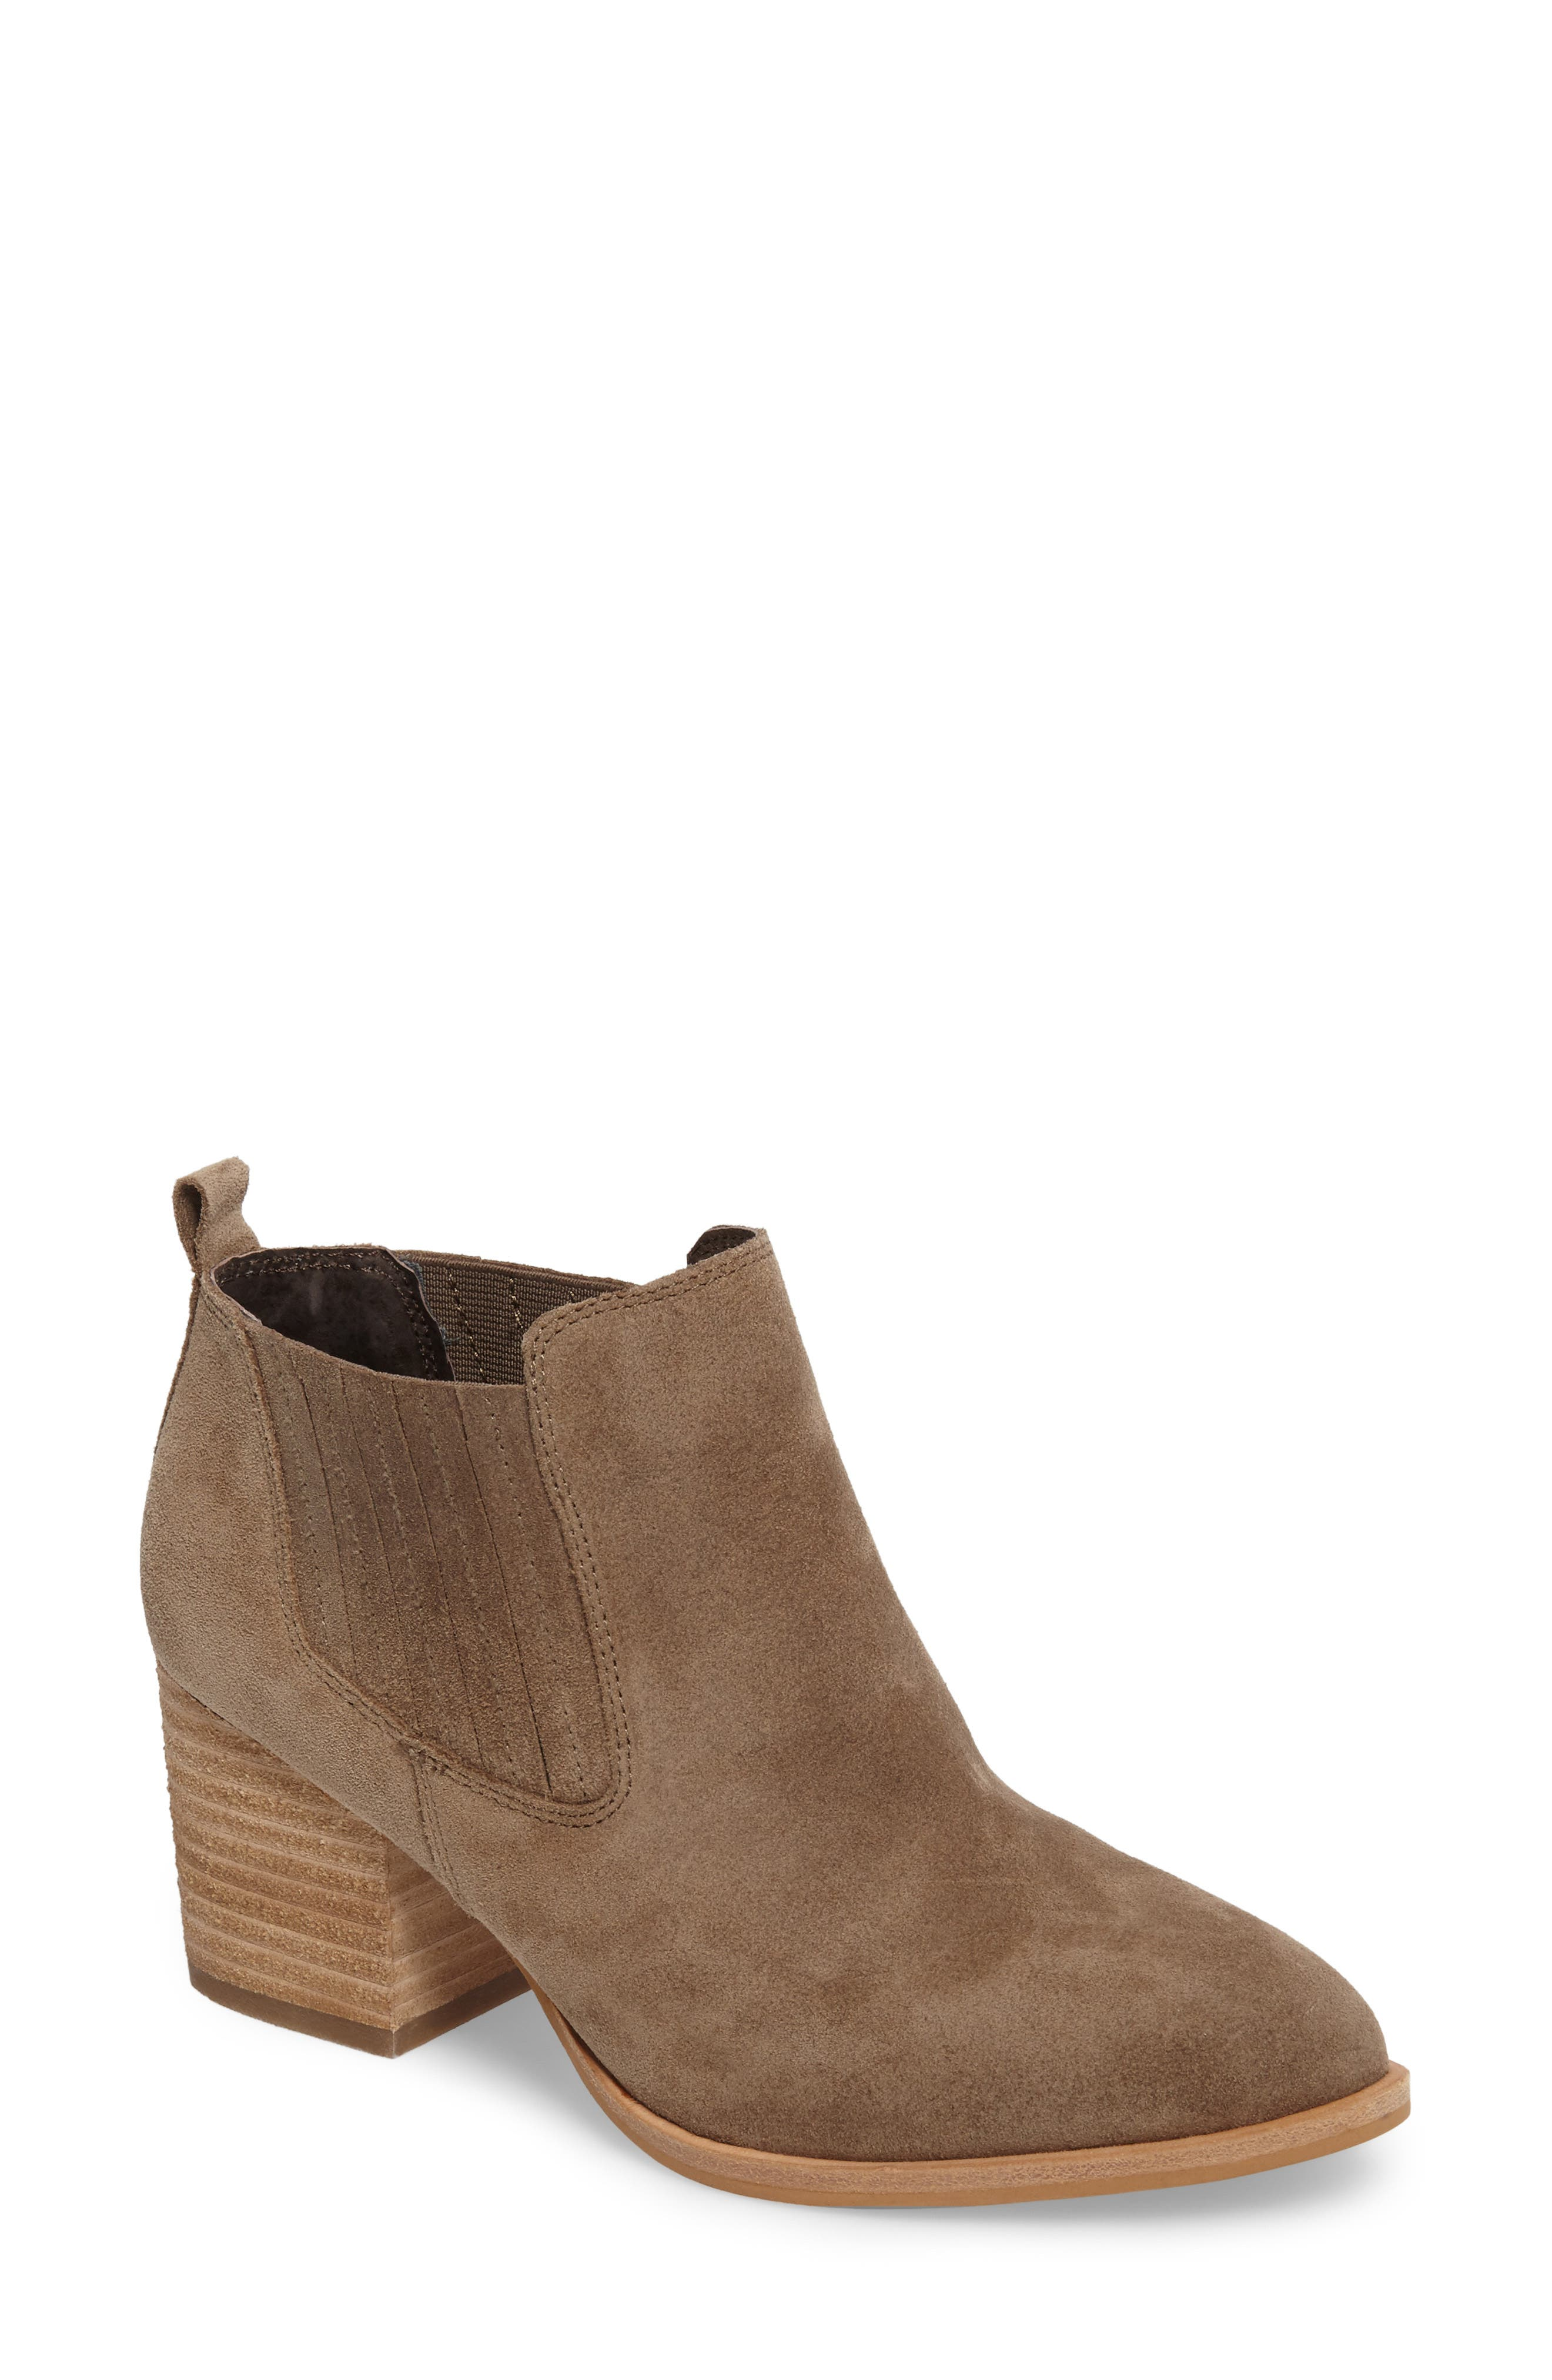 ISOLÁ, Olicia Gored Bootie, Main thumbnail 1, color, MARMOTTA LIGHT GREY SUEDE